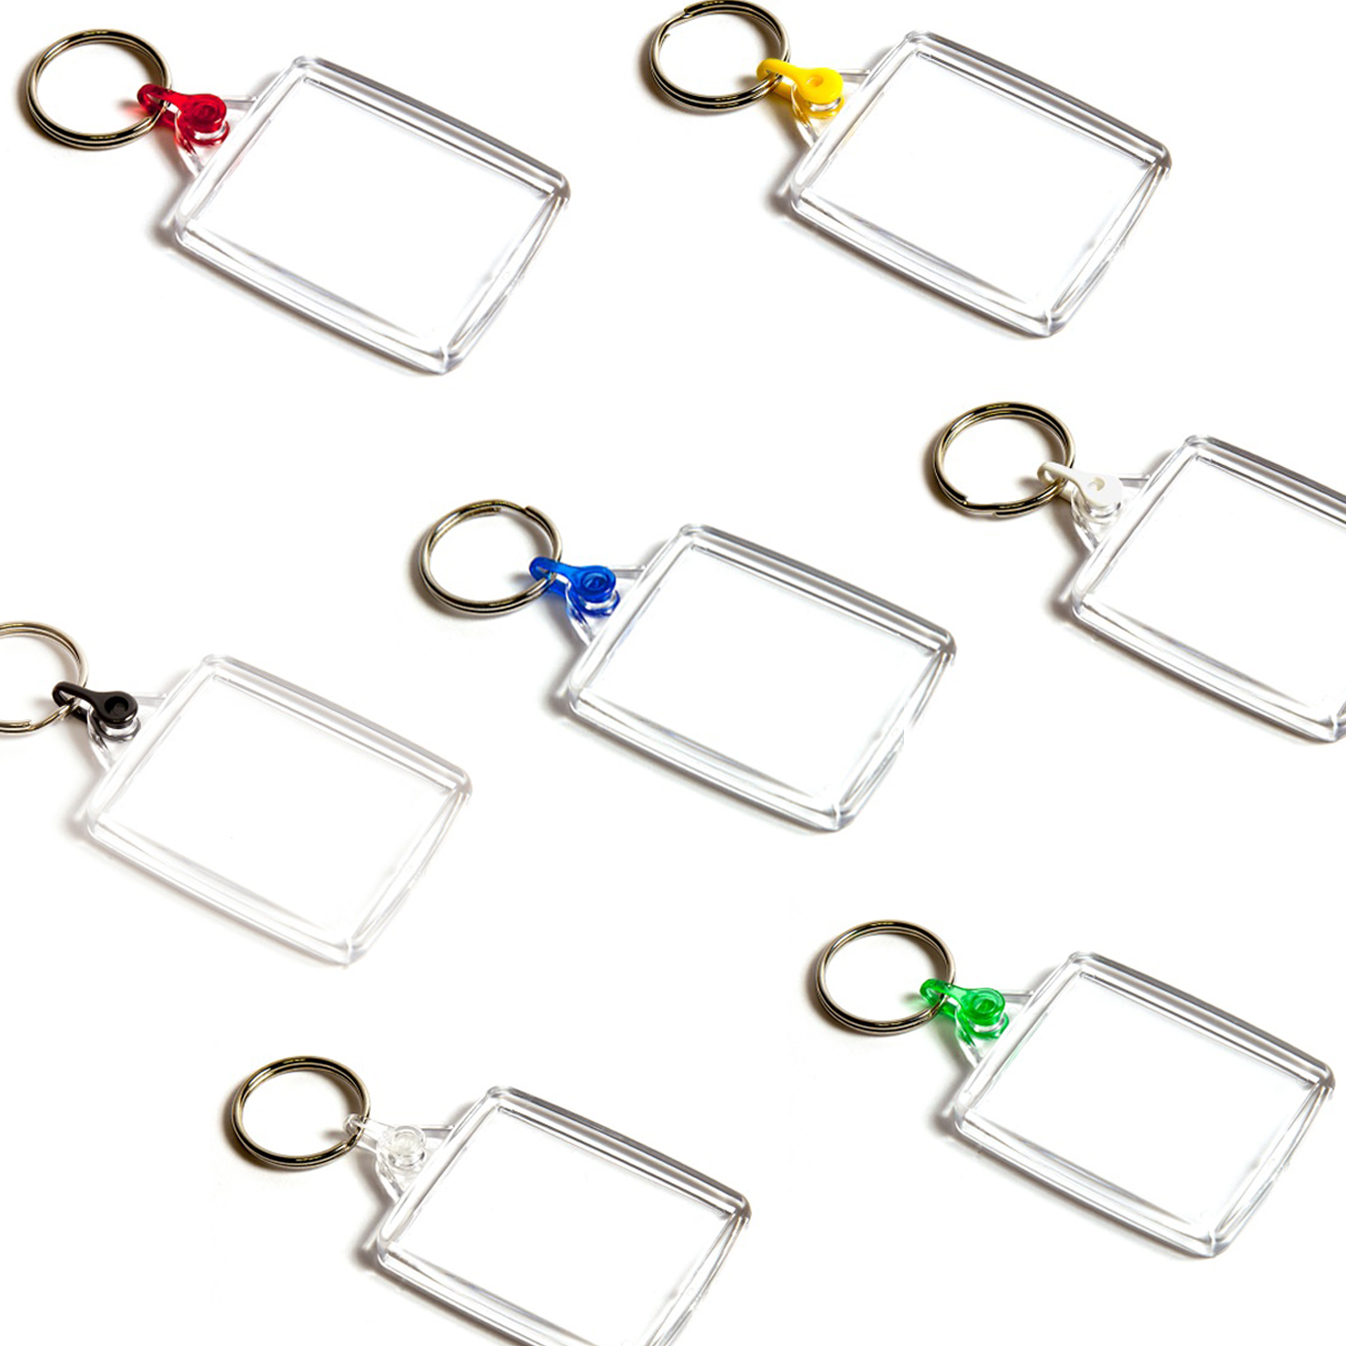 A502 Rectangular Blank Plastic Photo Insert Keyring with Mixed Coloured Connectors - 45 x 35mm